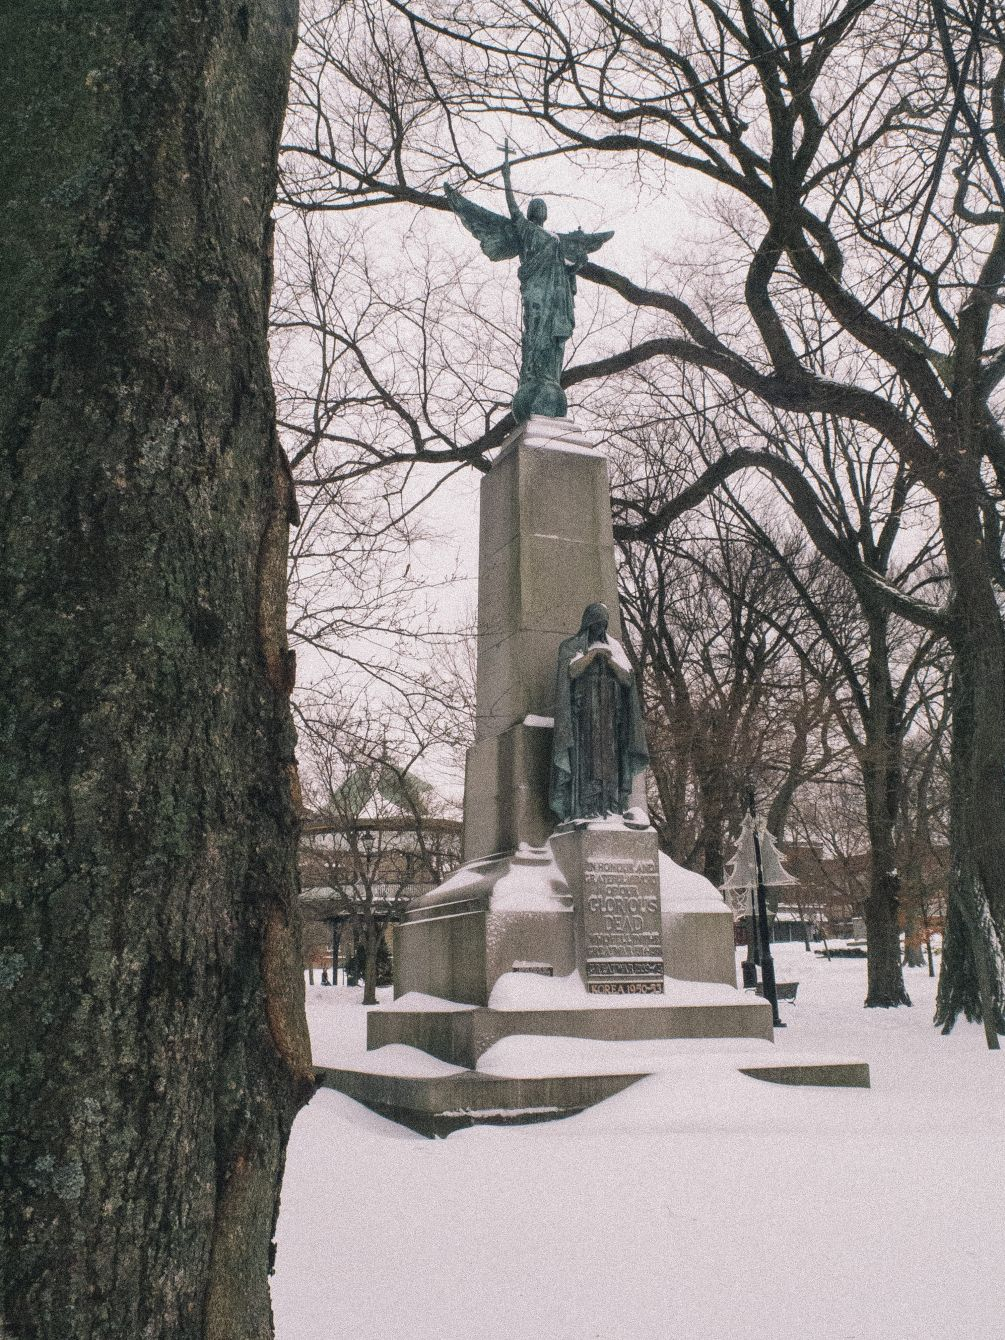 Click thumbnail to see details about photo - The Glorious Dead Statue Saint John Photograph